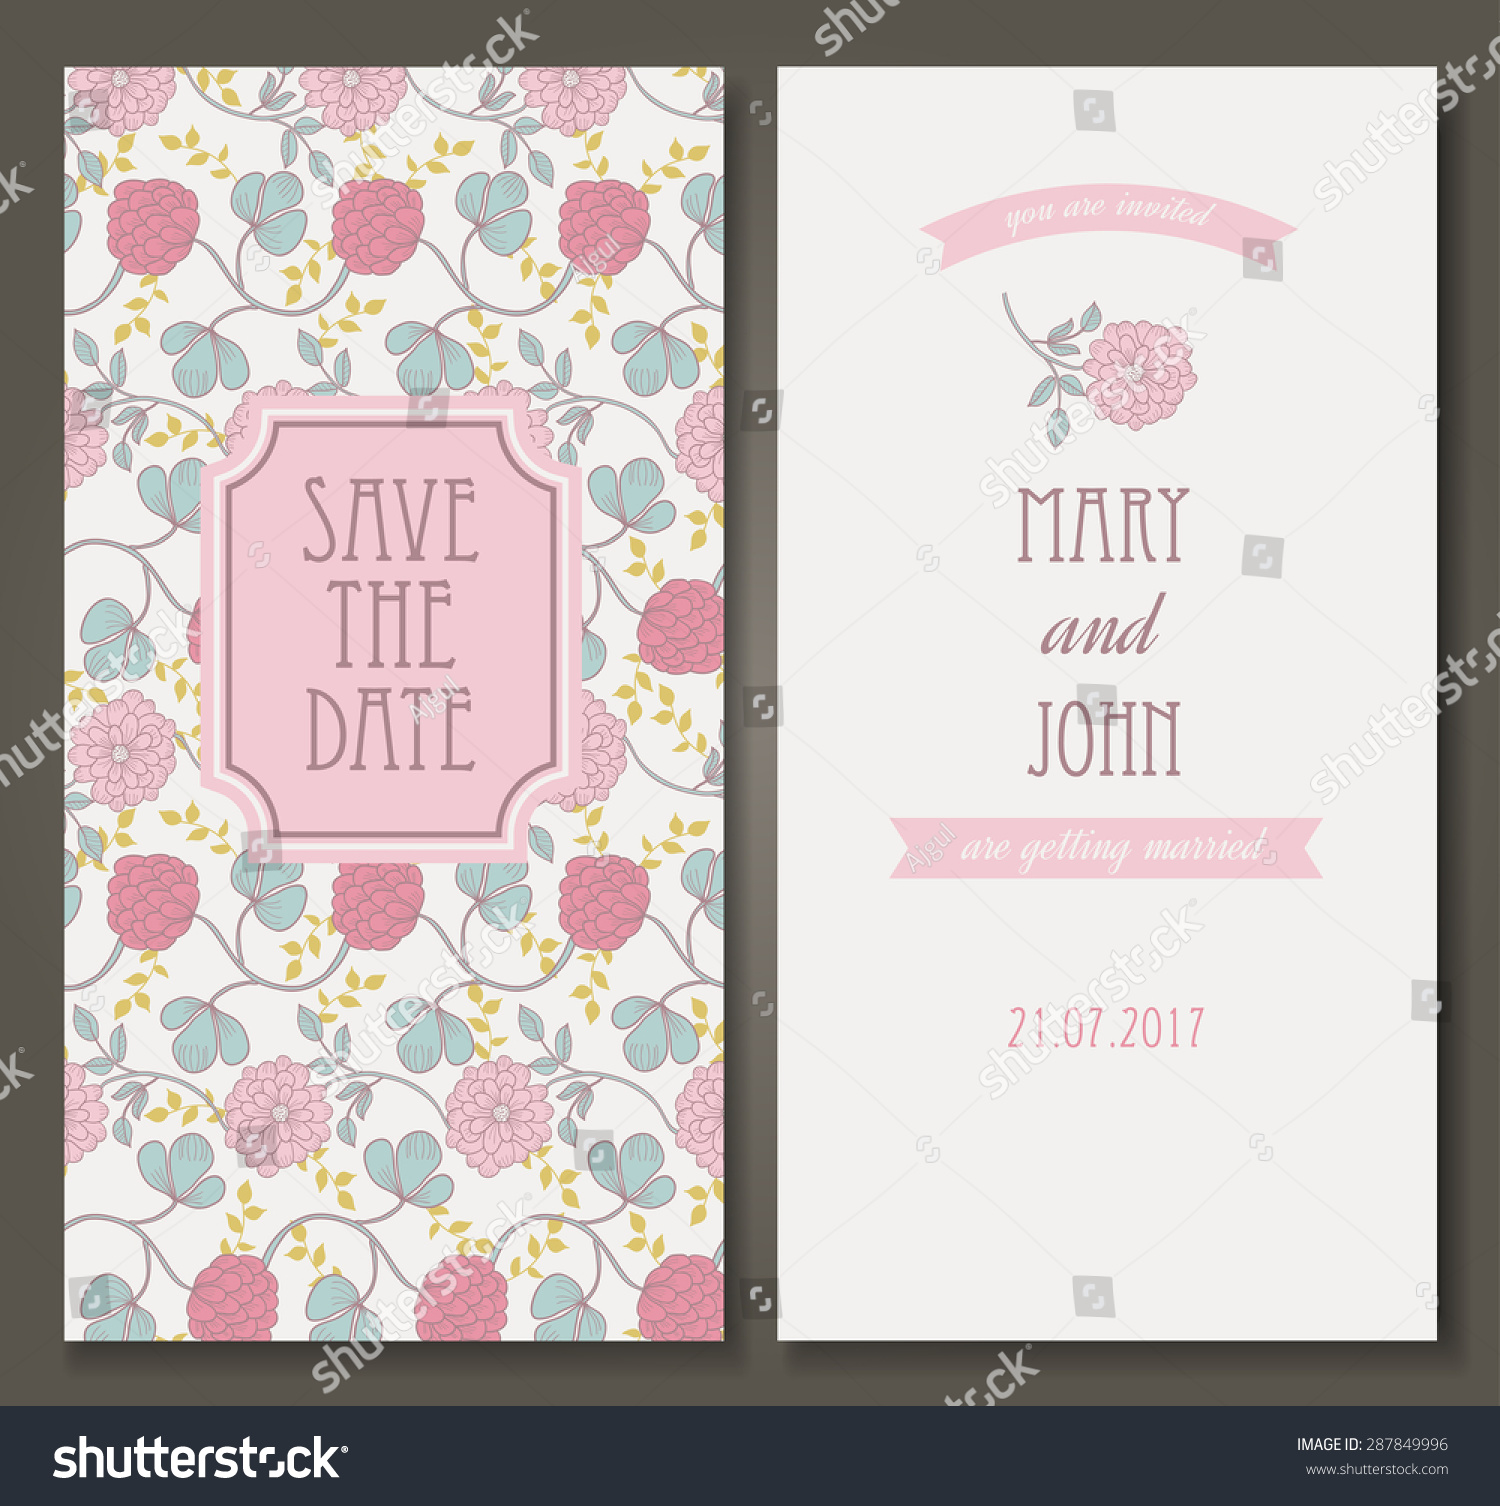 Vintage vector card templates can be used for save the date baby id 287849996 filmwisefo